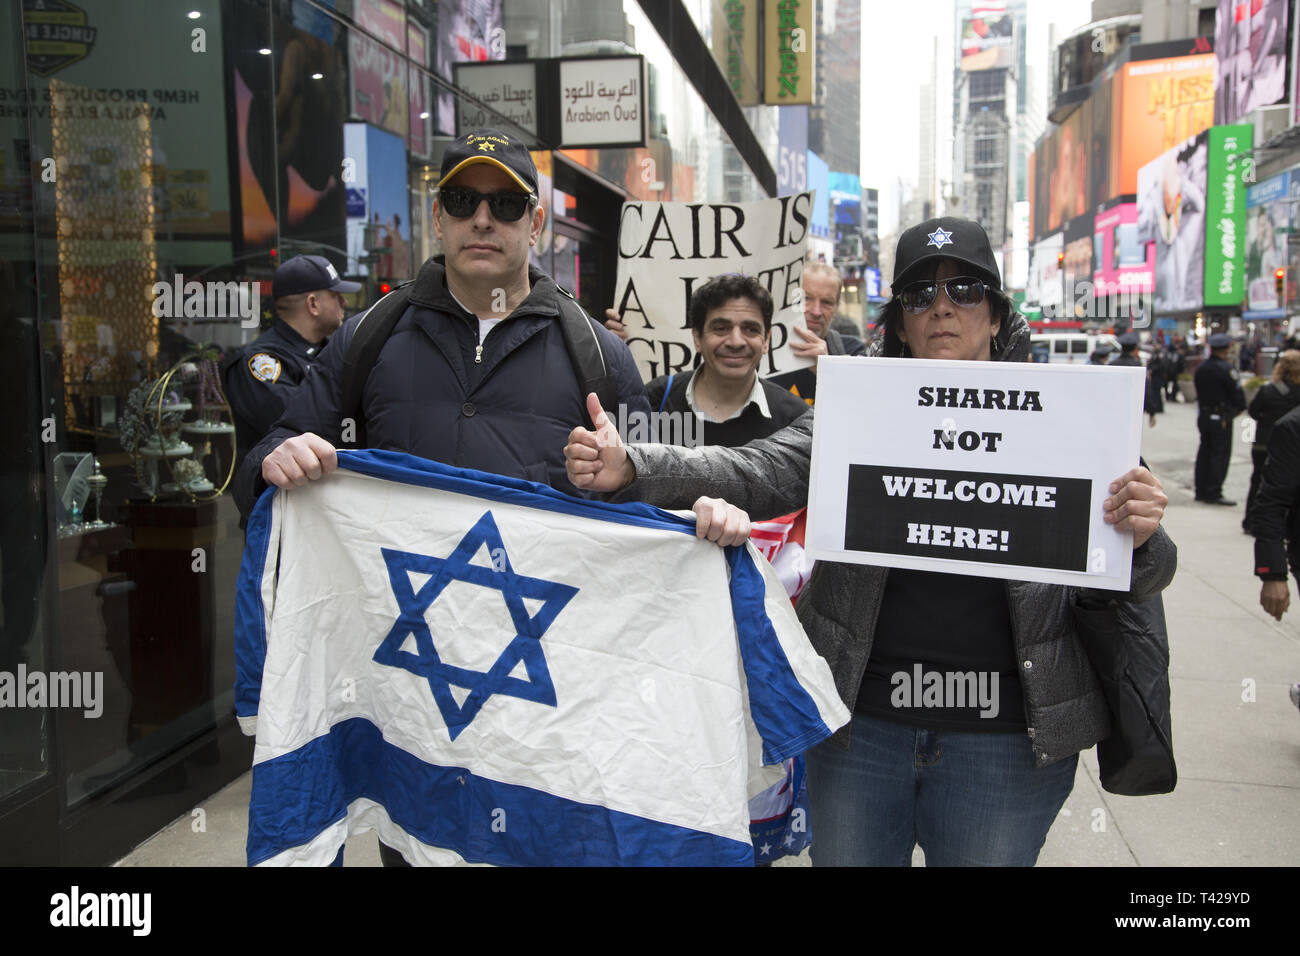 Pro Israel Trump supporters demonstrate outside a pro-Palestinian rally. Muslims rally and march in New York CIty after the New Zealand massacre and for the Palestinians in Gaza as well as against Islamophobia in general. Stock Photo